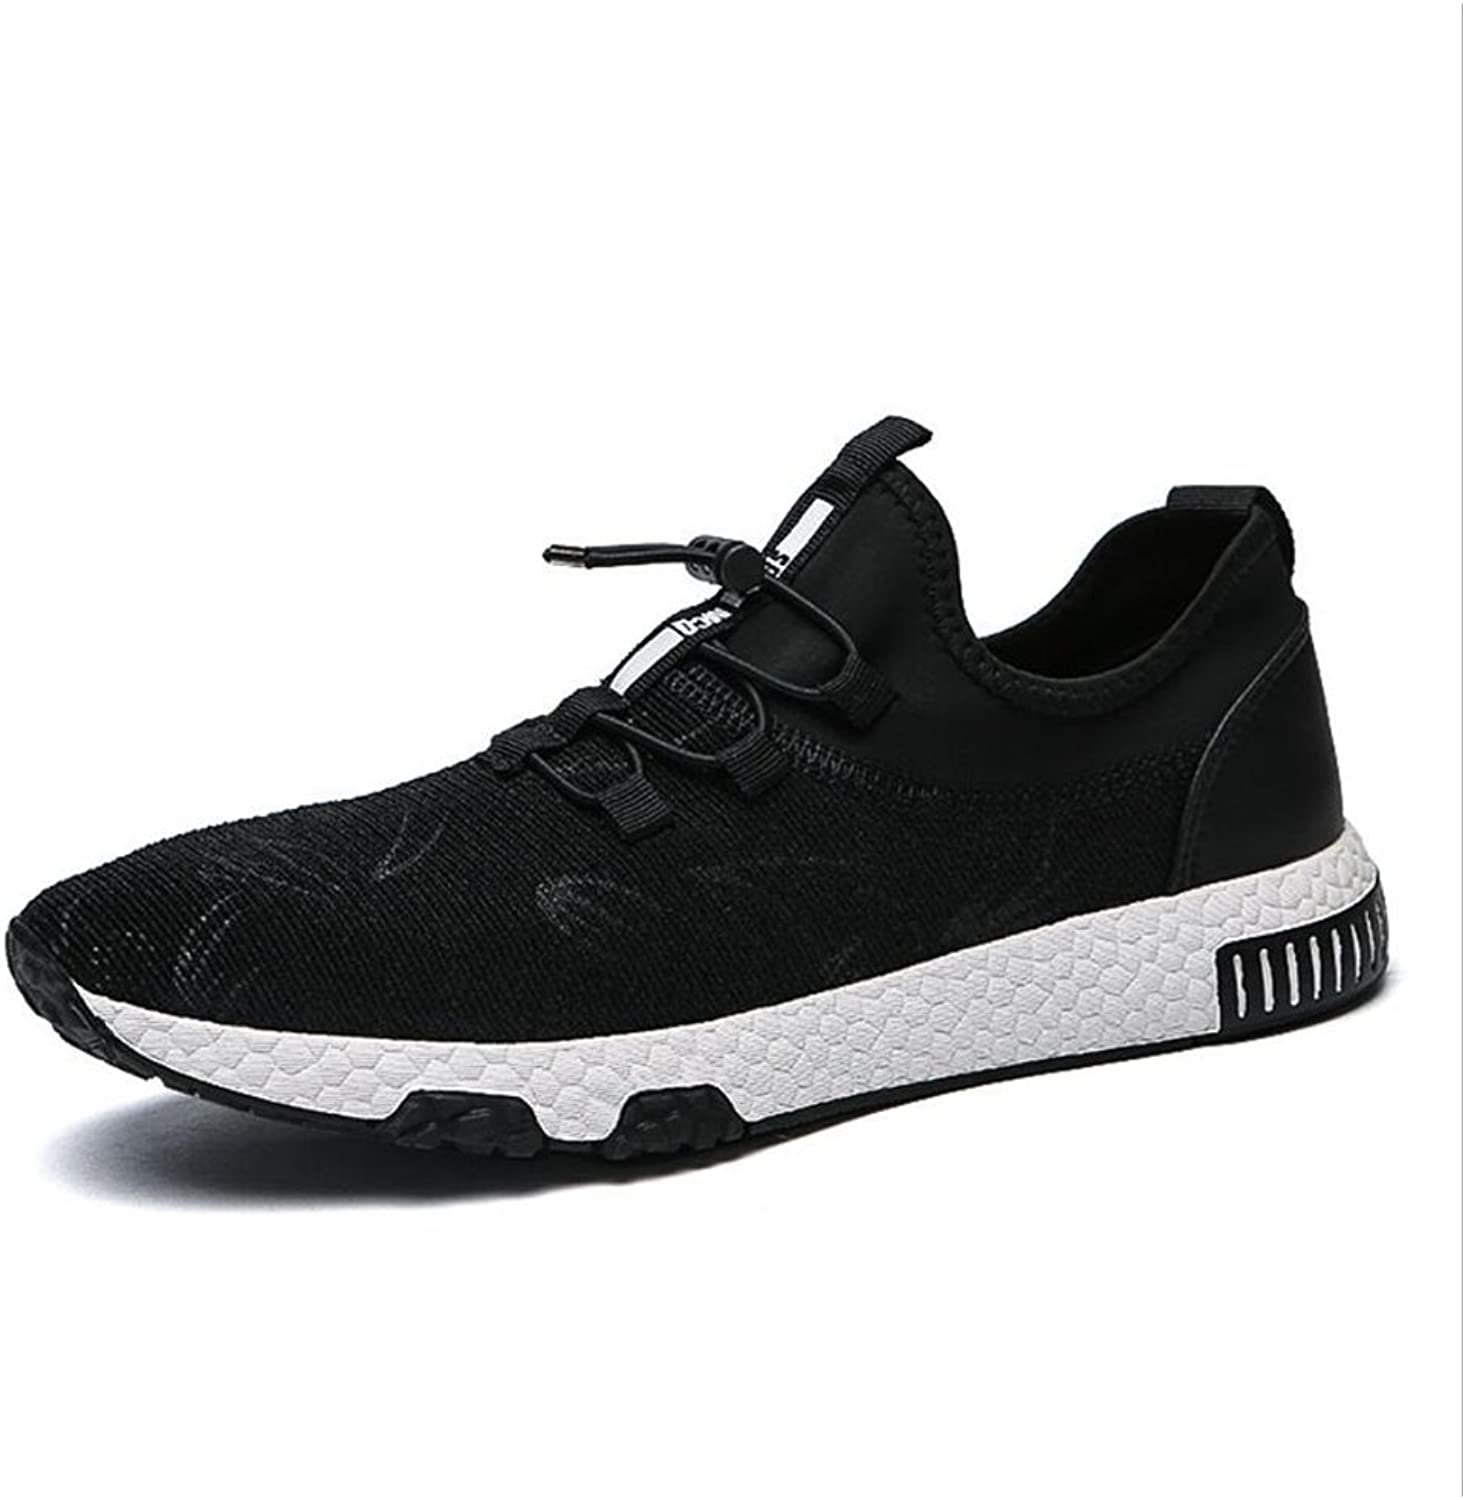 XUE Men's shoes Knit Spring Fall Lace-up Breathable High-Top Sneakers Light Soles Comfort Running shoes Outdoor Hiking shoes Light Soles Athletic shoes (color   B, Size   44)